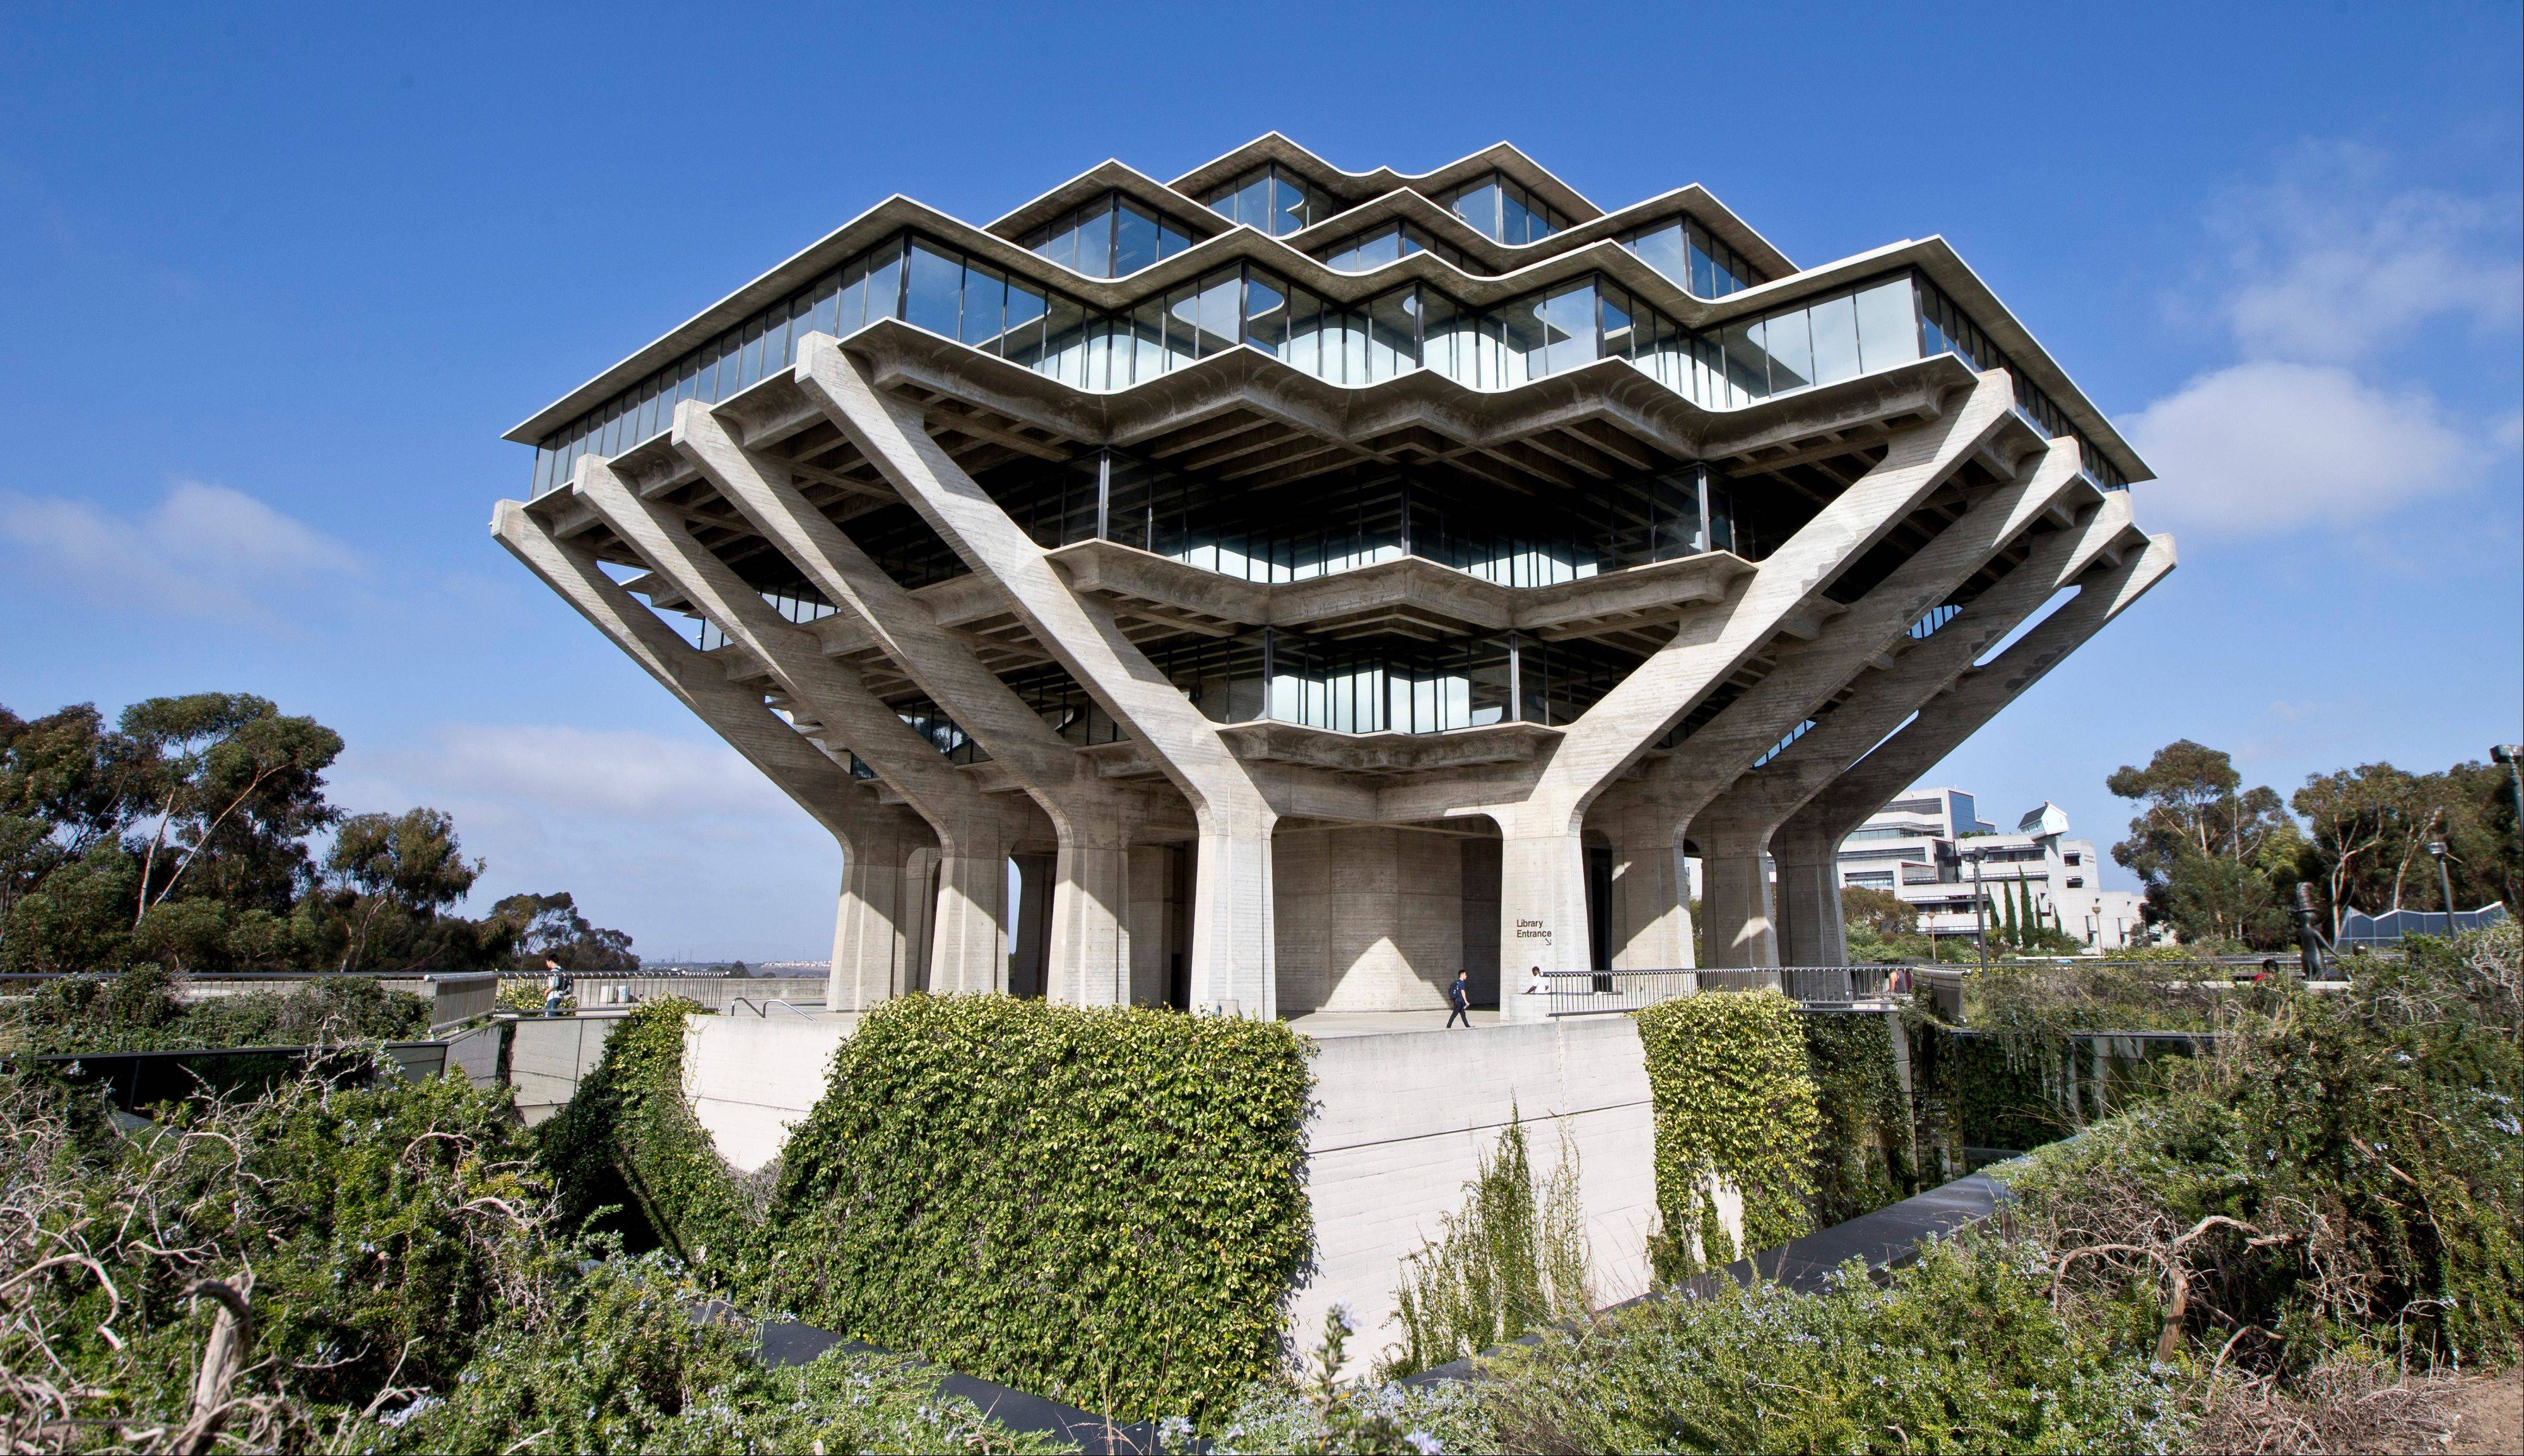 The Geisel Library, designed by architect William Pereira, is just one of many places to visit on the campus of the University of California, San Diego.